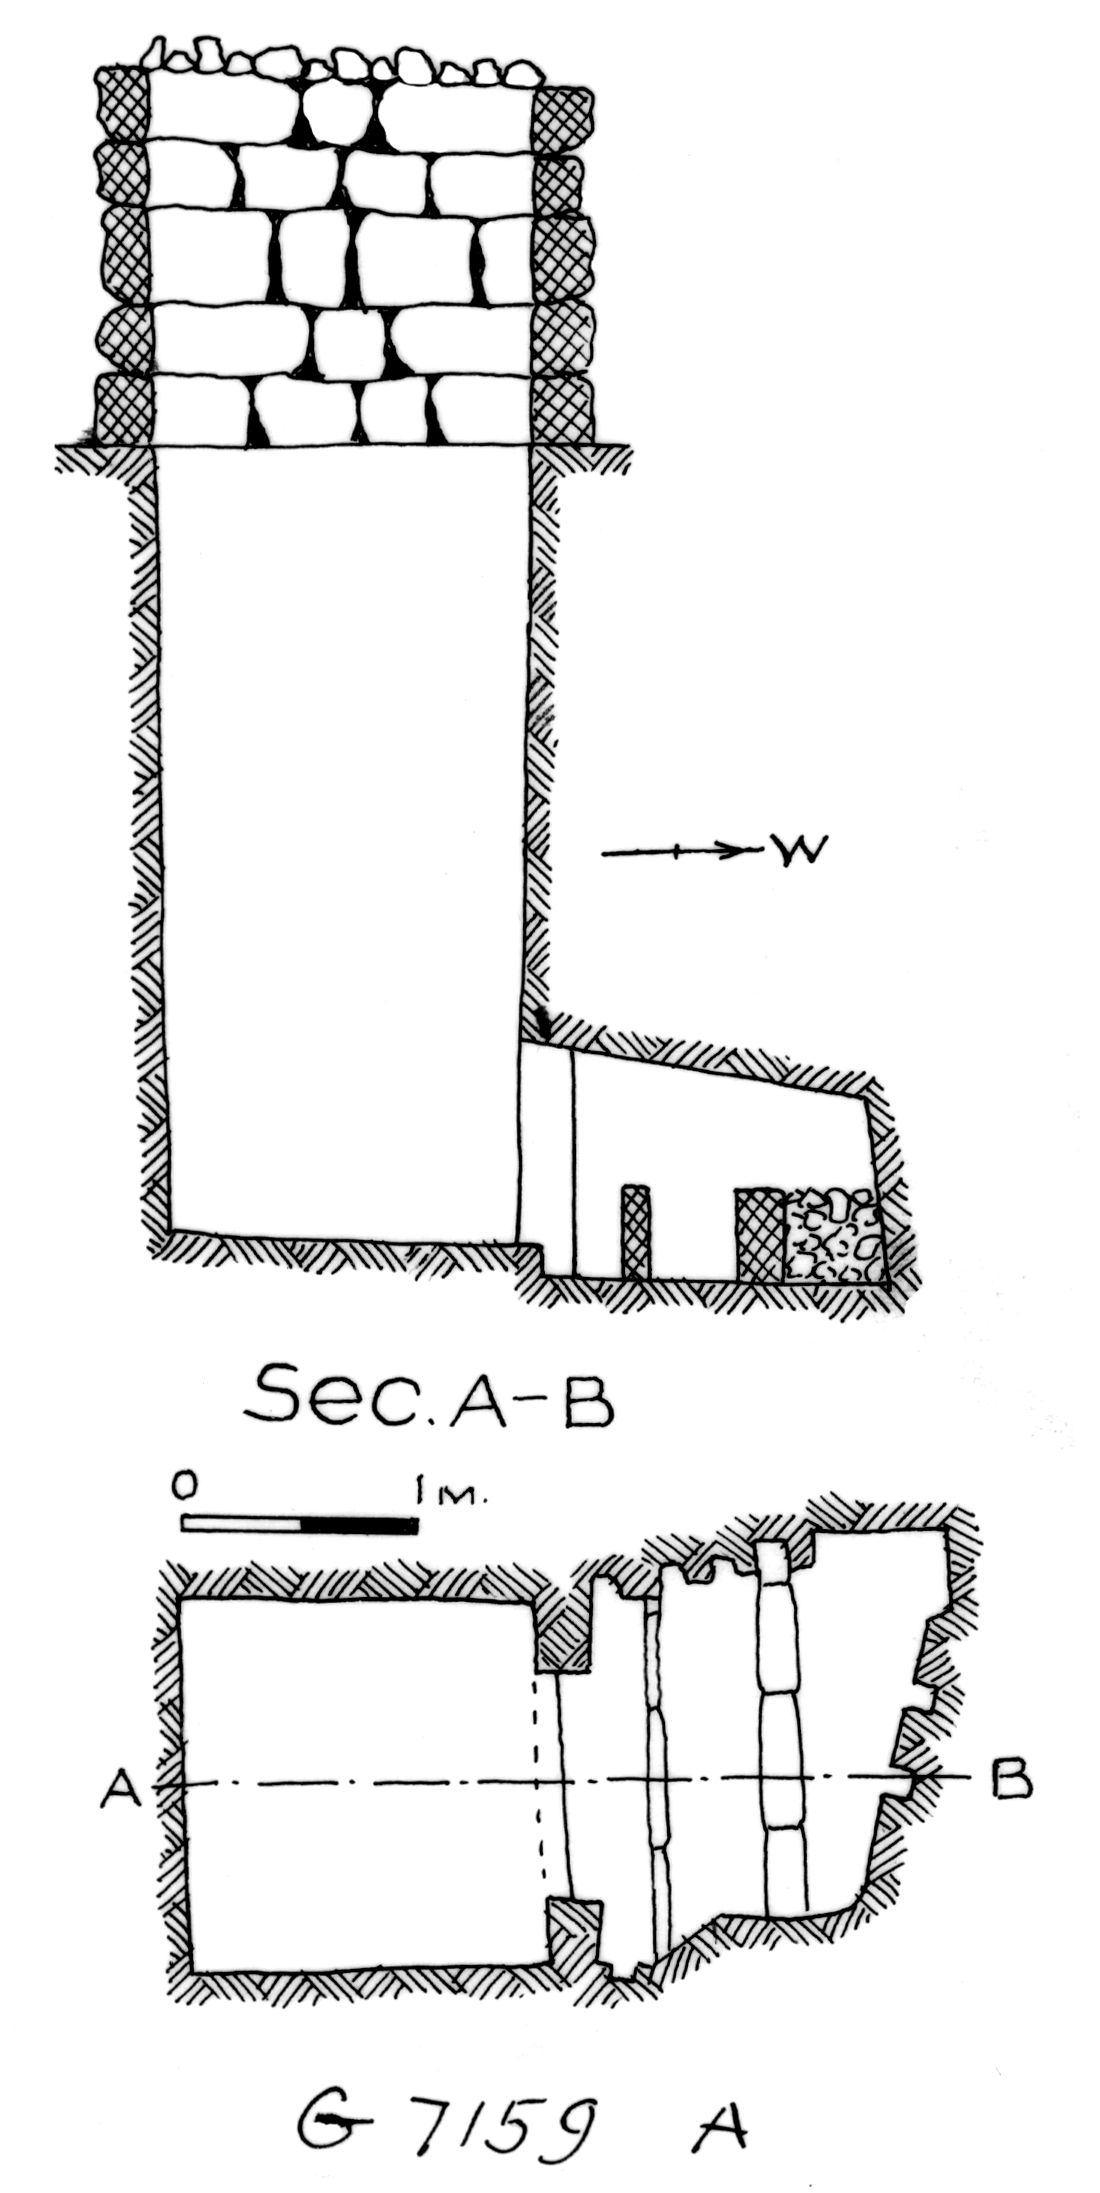 Maps and plans: G 7159, Shaft A